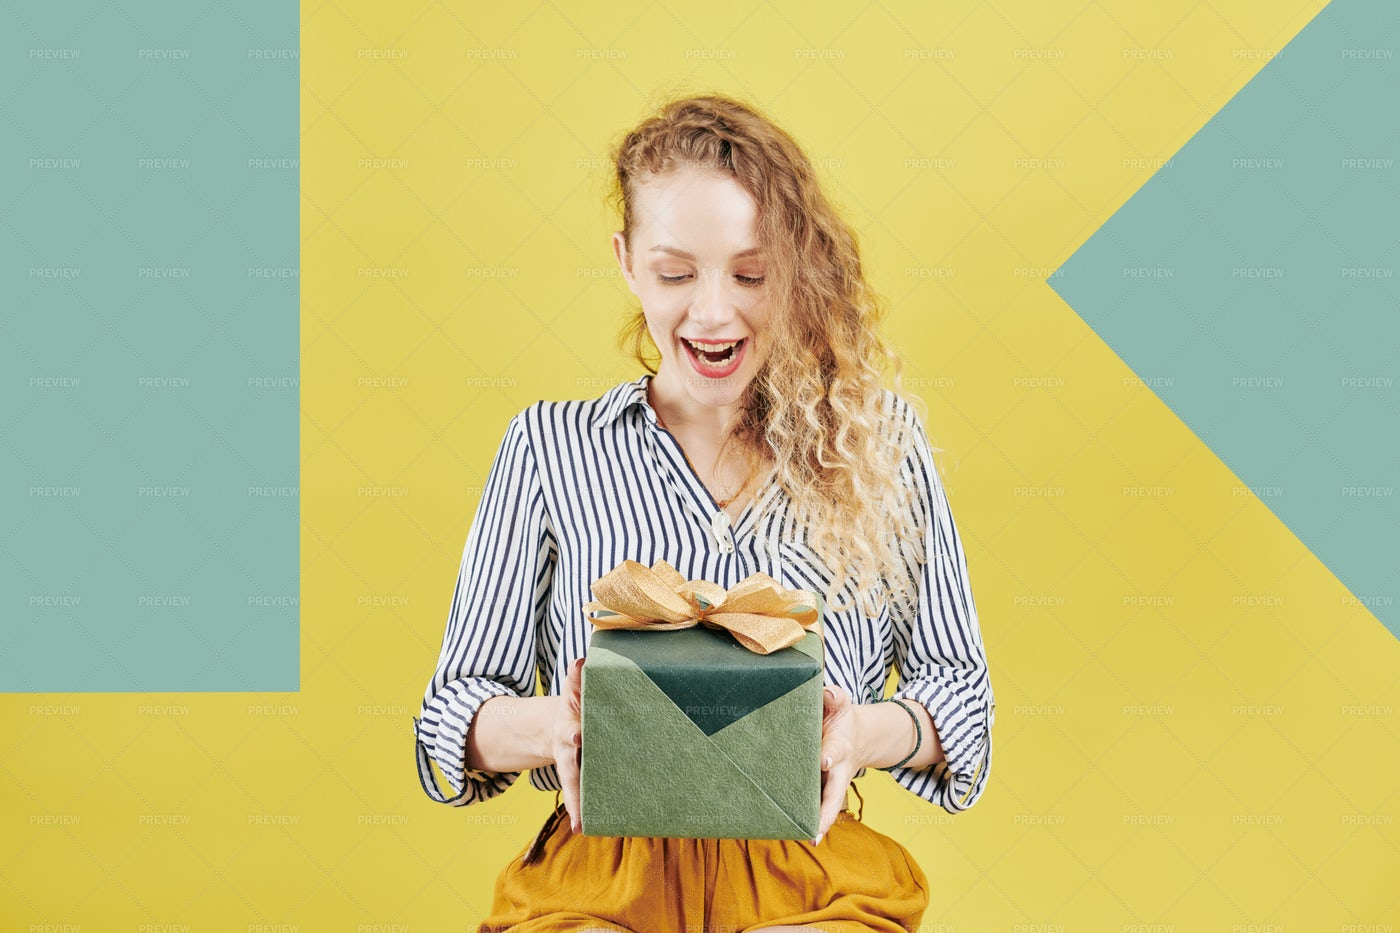 Excited Woman Looking At Birthday: Stock Photos